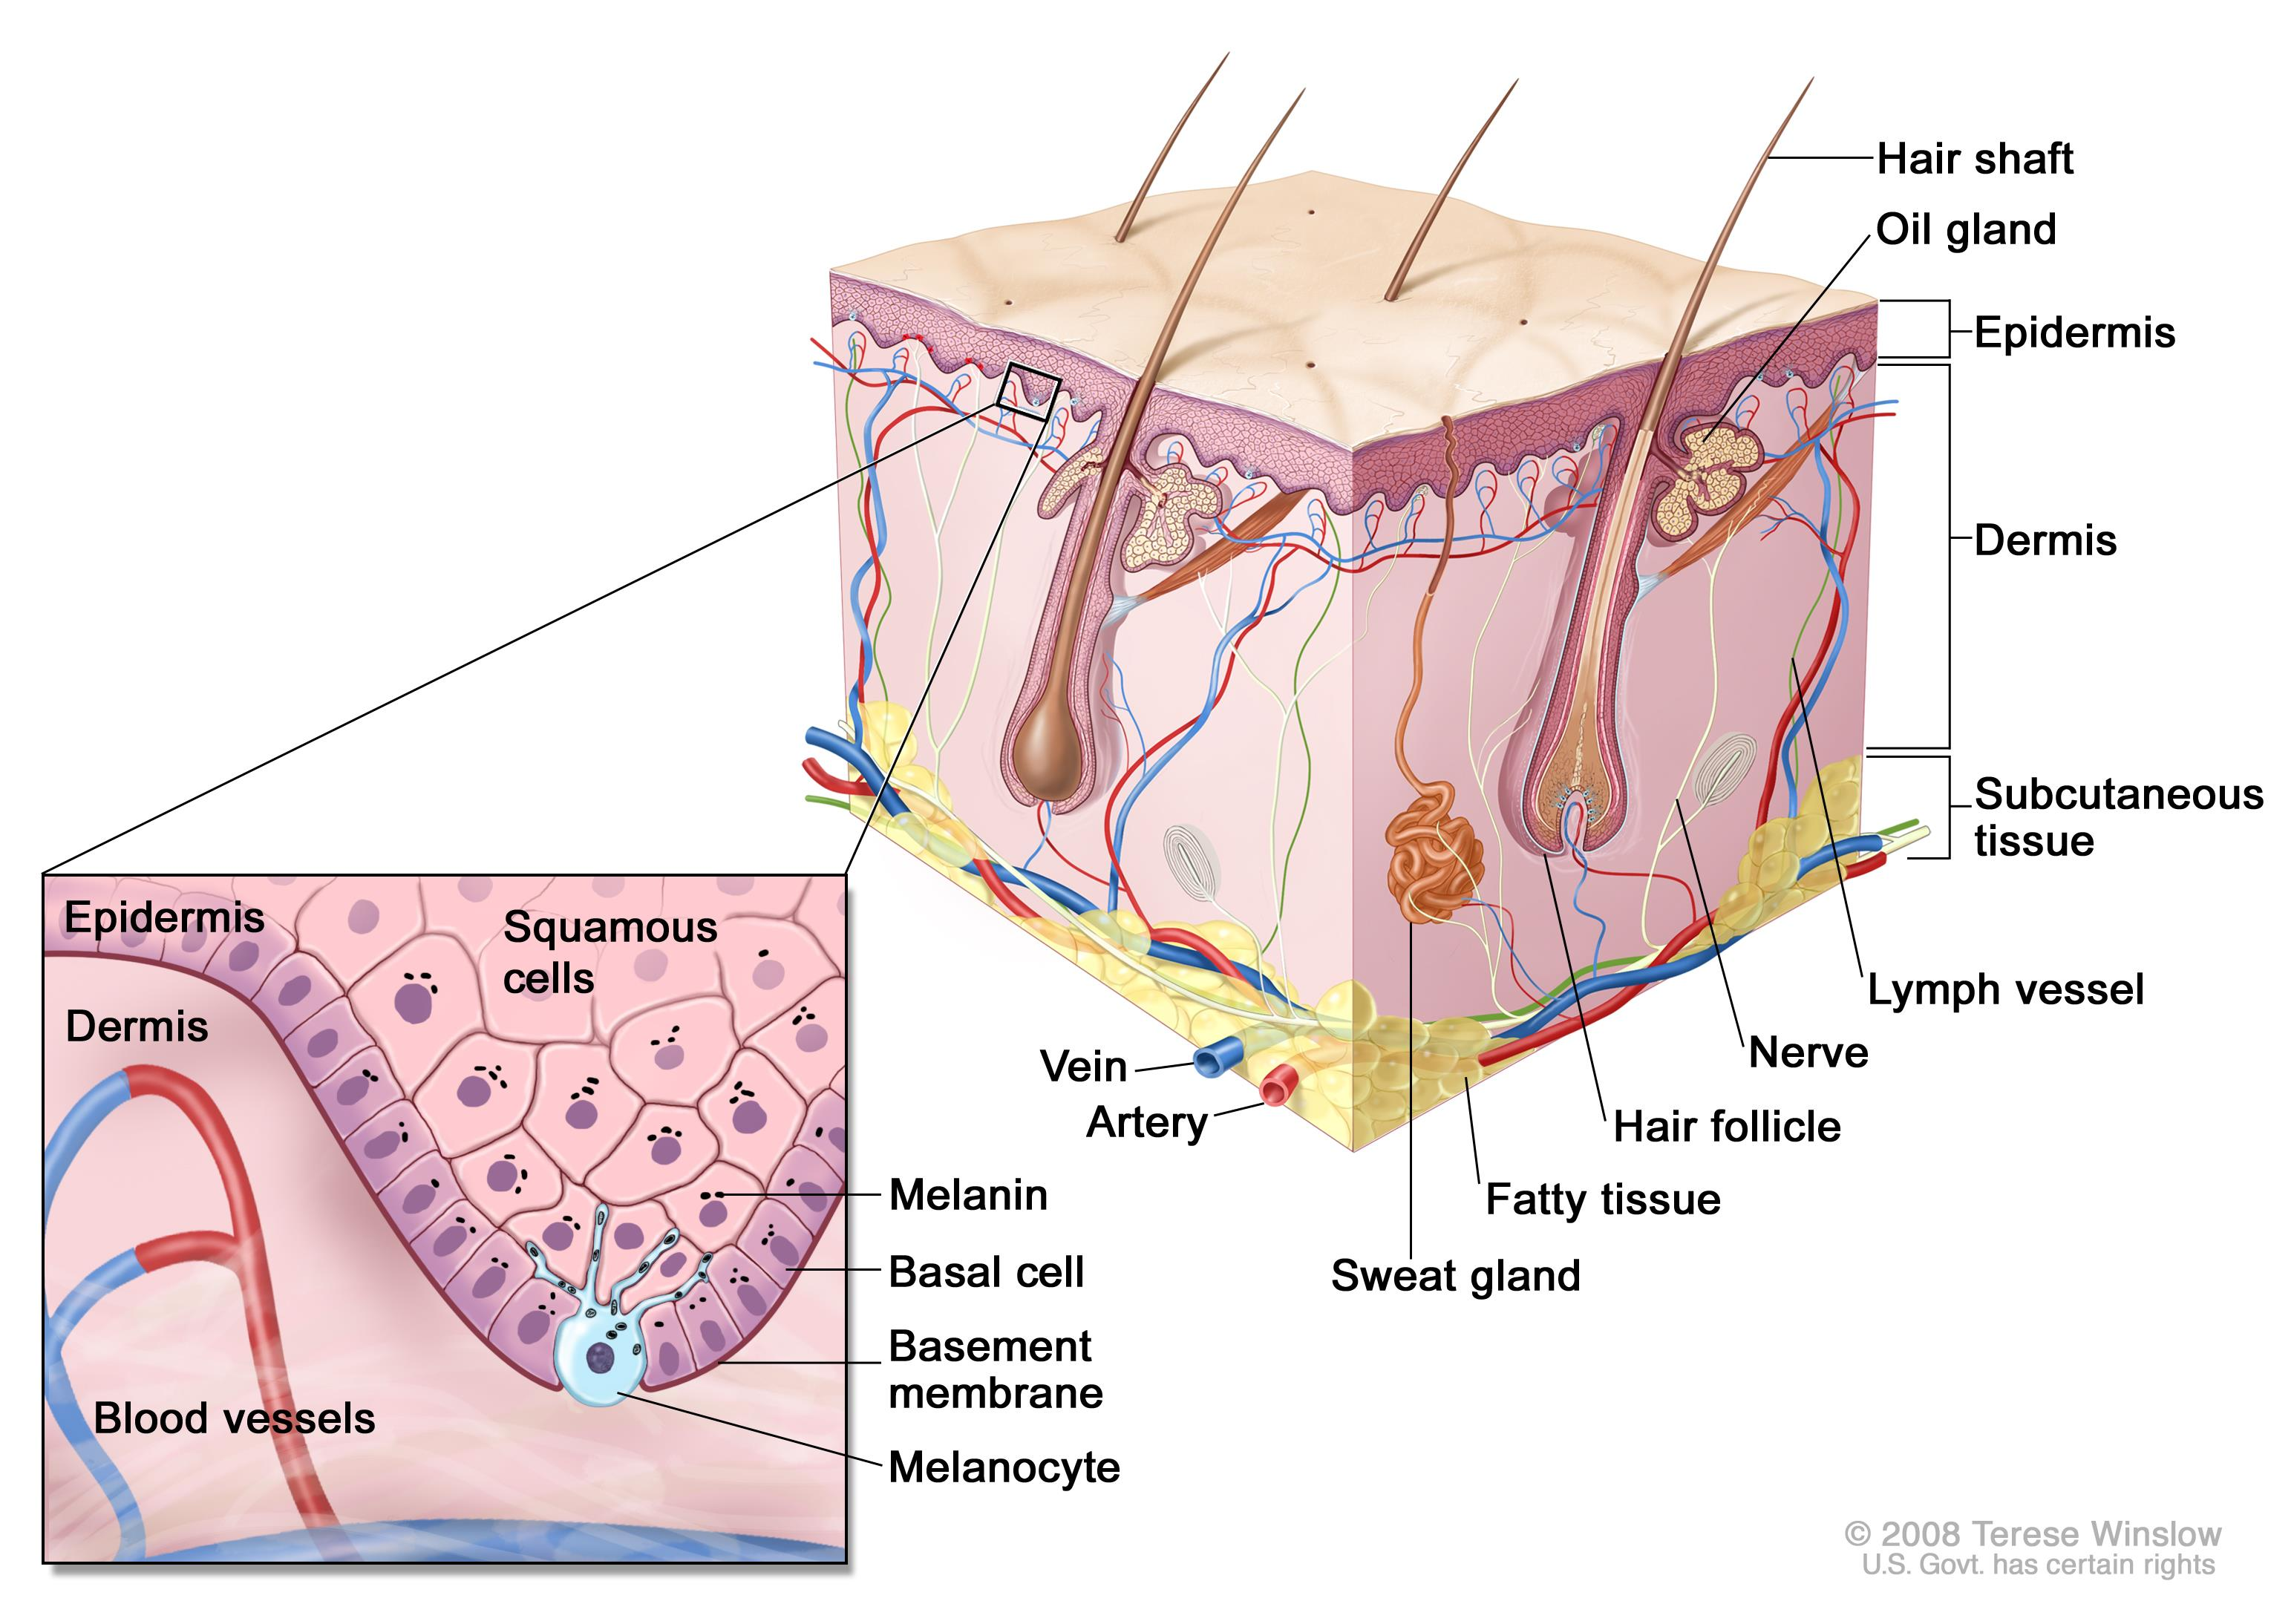 Schematic representation of normal skin; drawing shows normal skin anatomy, including the epidermis, dermis, hair follicles, sweat glands, hair shafts, veins, arteries, fatty tissue, nerves, lymph vessels, oil glands, and subcutaneous tissue. The pullout shows a close-up of the squamous cell and basal cell layers of the epidermis, the basement membrane in between the epidermis and dermis, and the dermis with blood vessels. Melanin is shown in the cells. A melanocyte is shown in the layer of basal cells at the deepest part of the epidermis.